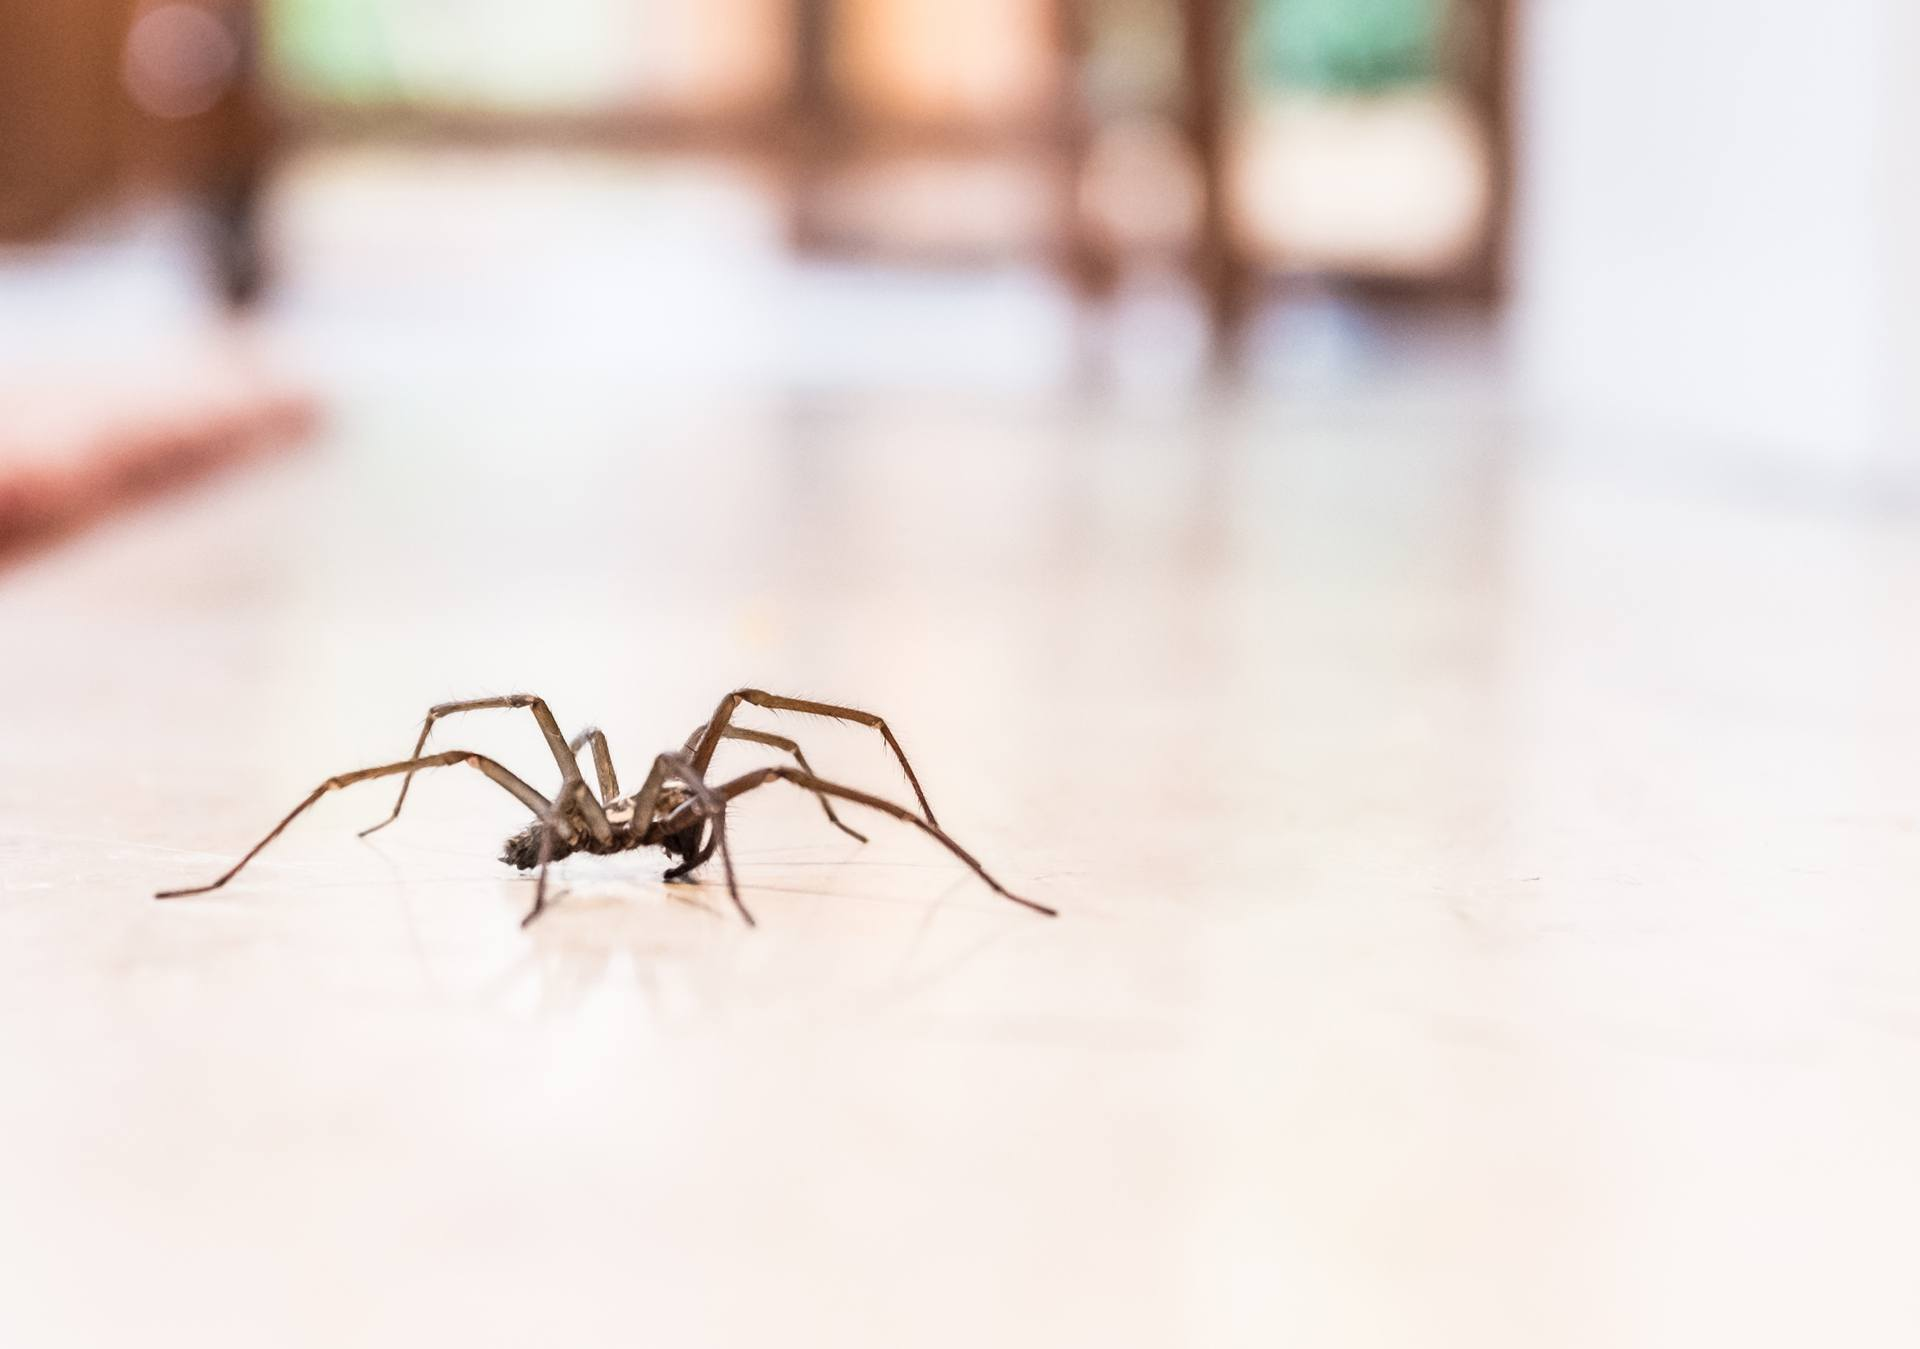 brown spider crawling across a white tile floor